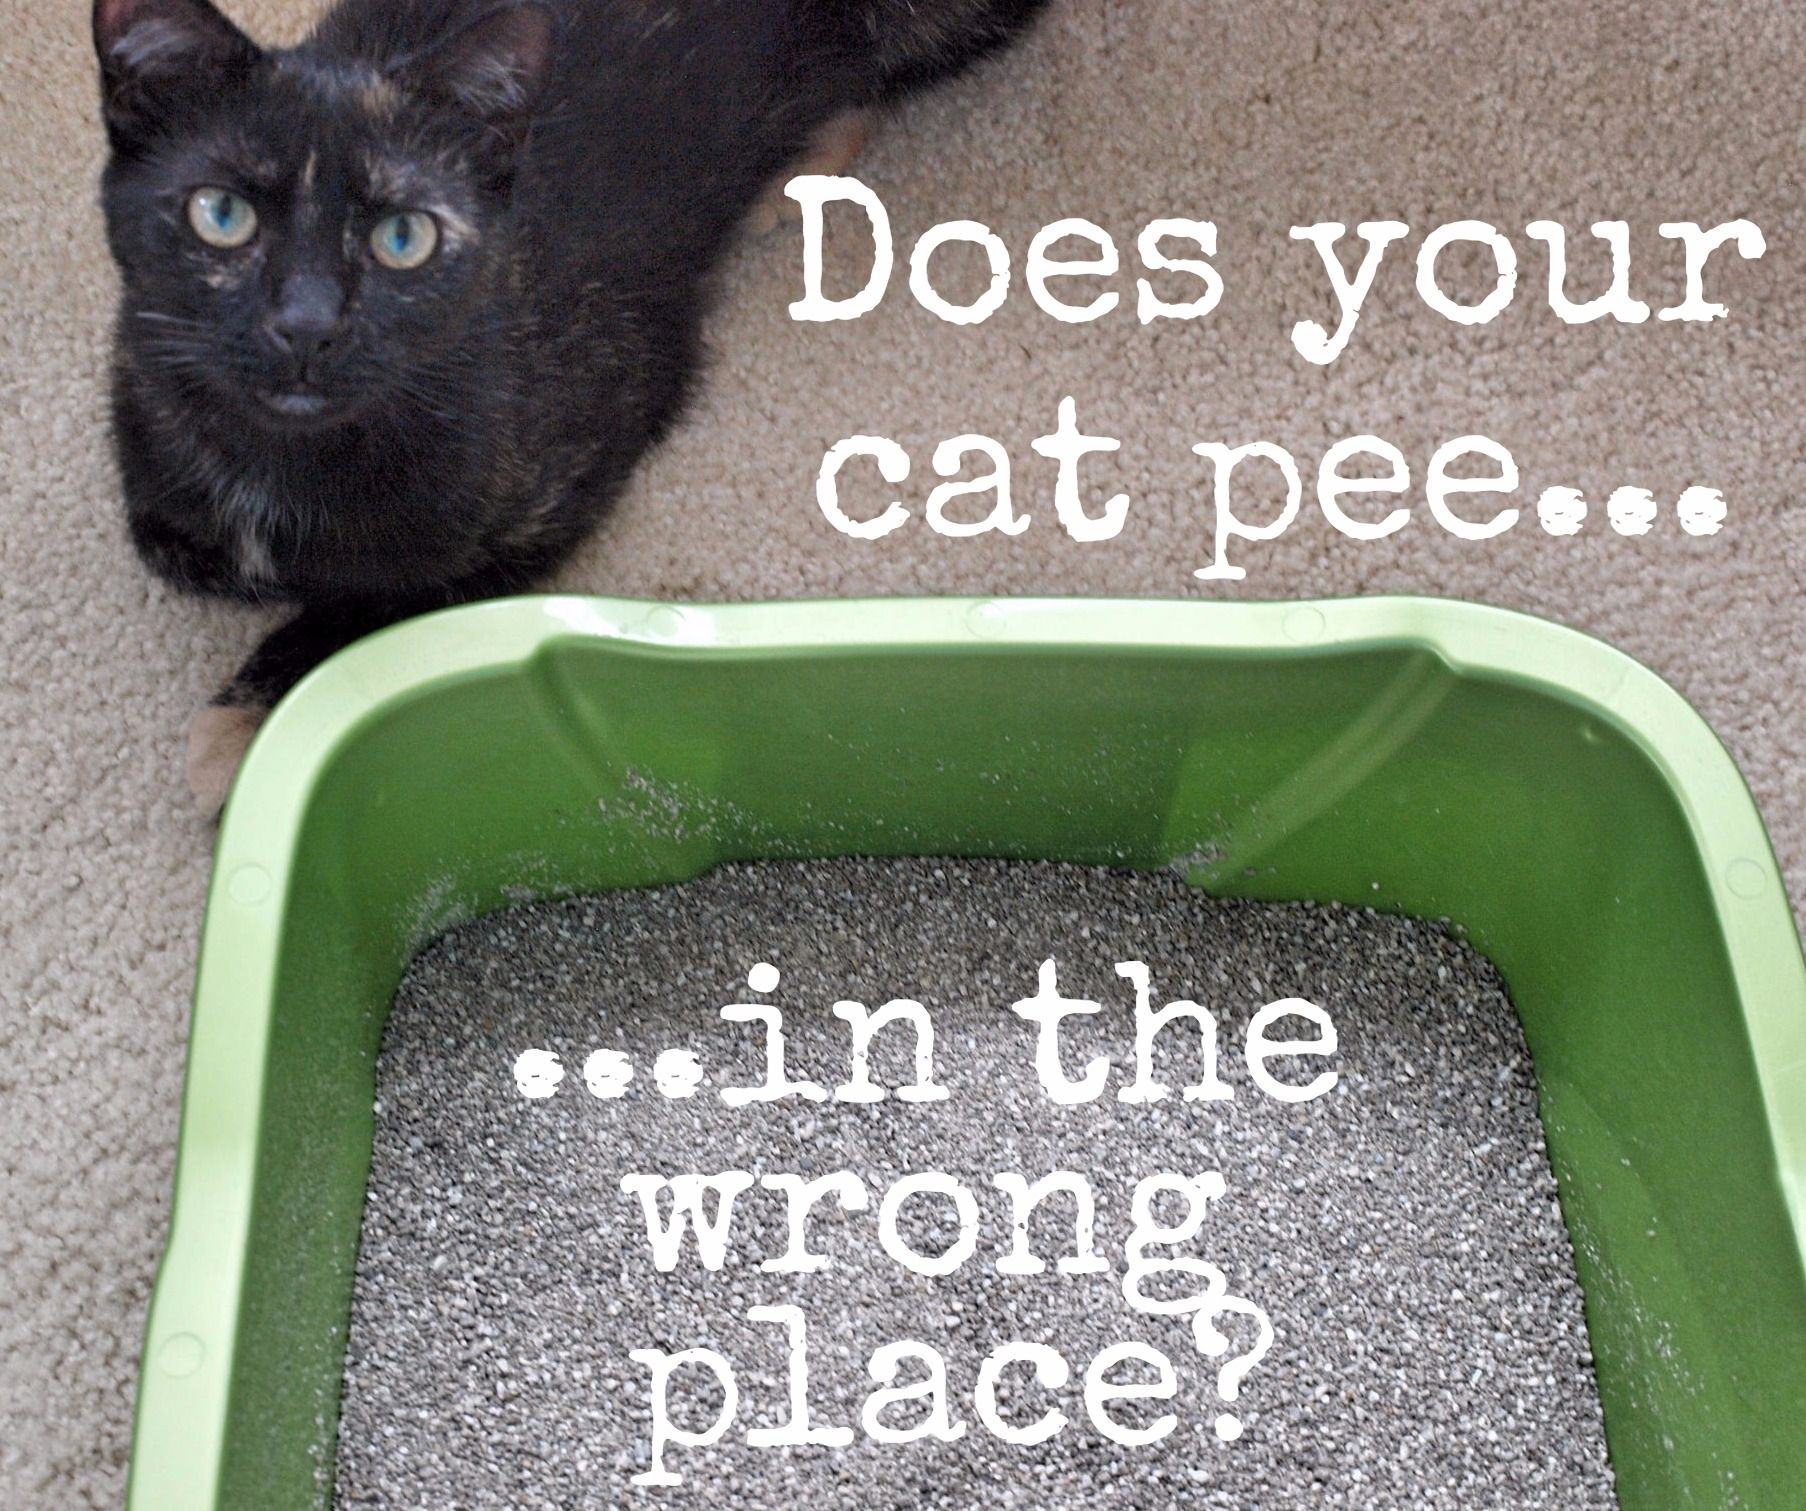 How To Get Rid Of Sour Cat Urine Odor For Good Cat Urine Cleaning Hacks How To Clean Carpet